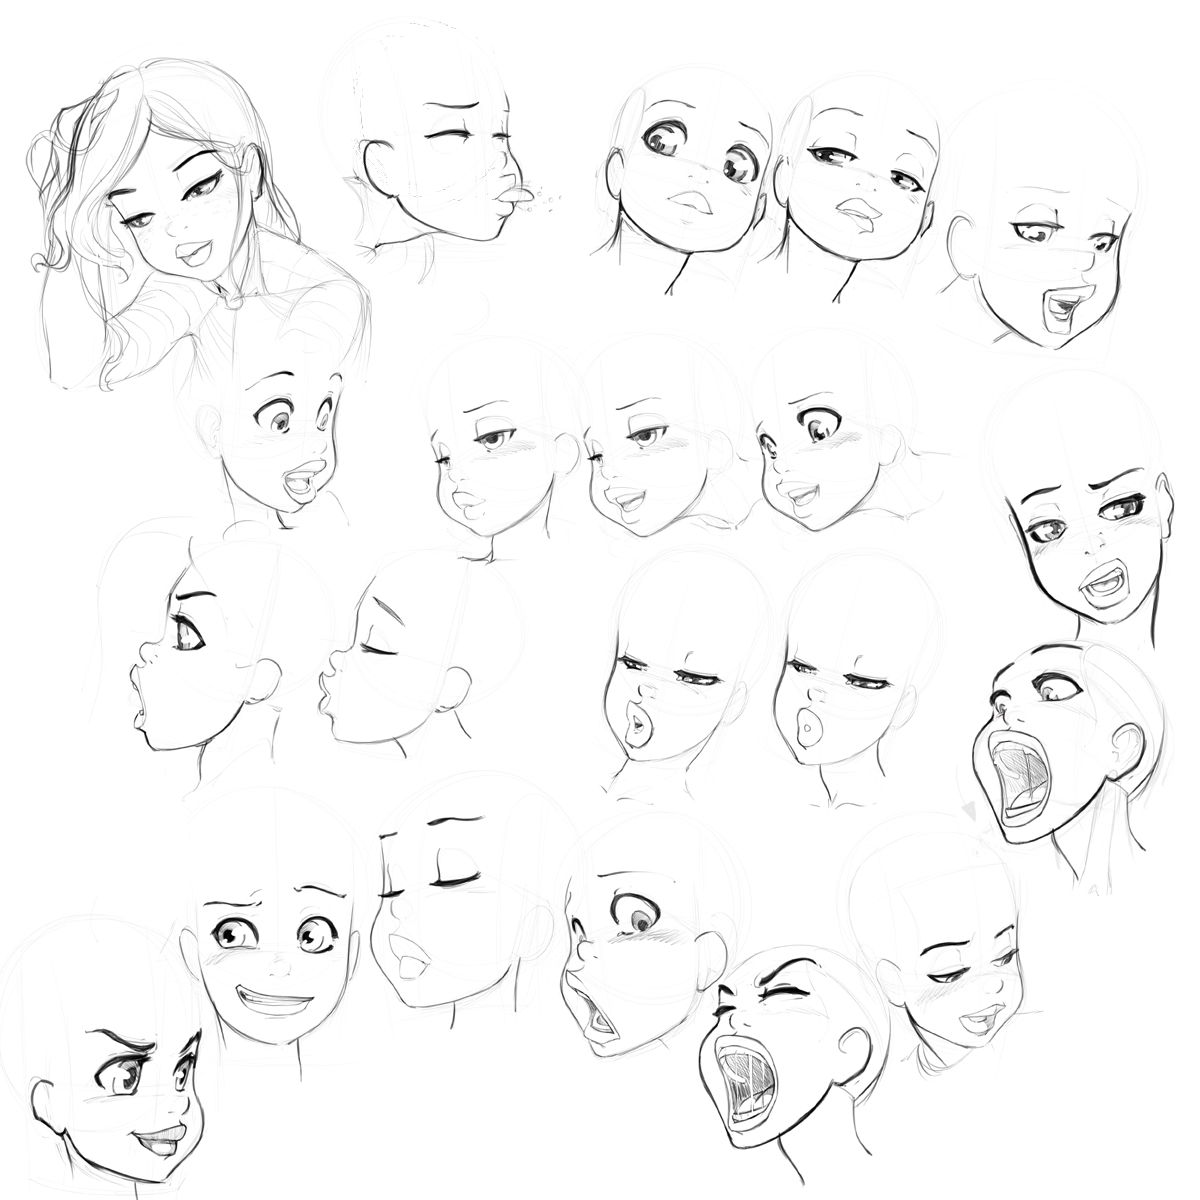 how to draw a cartoon face step by step with pencil - Google ...